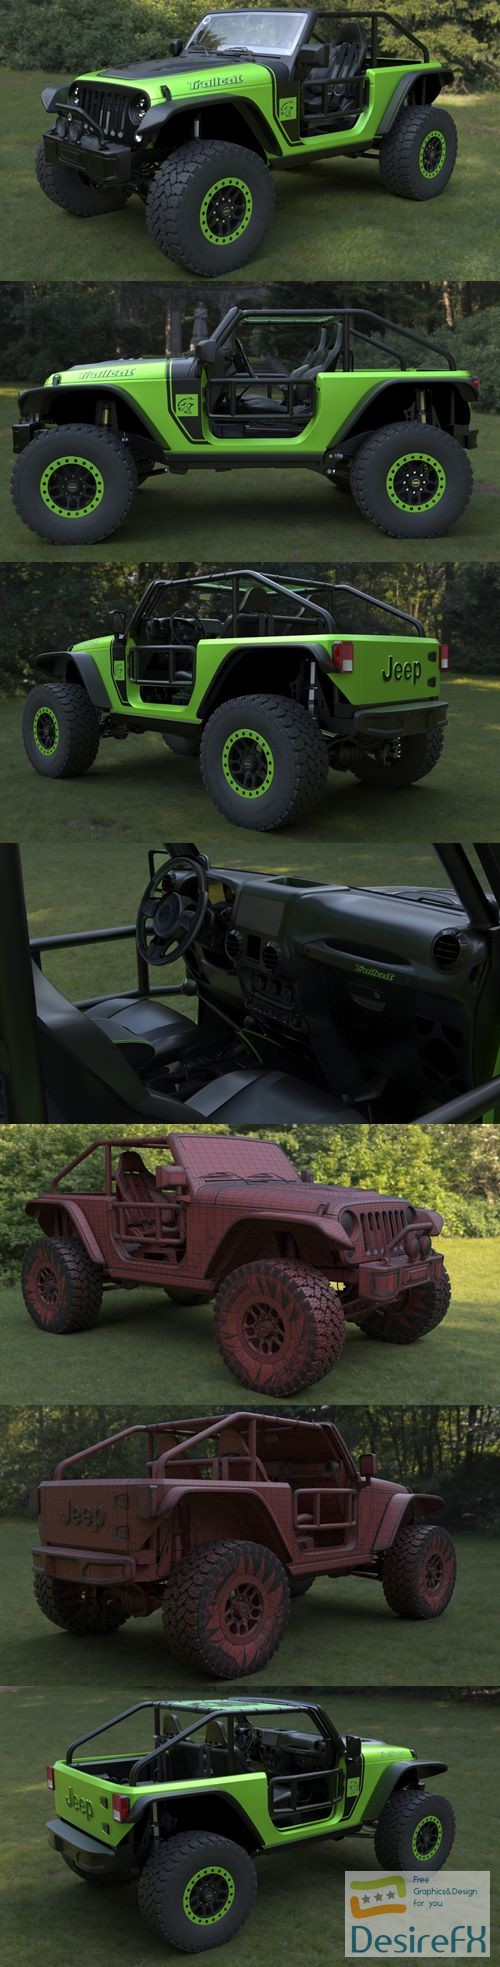 3d-models - Jeep Wrangler trailcat 2017 3D Model